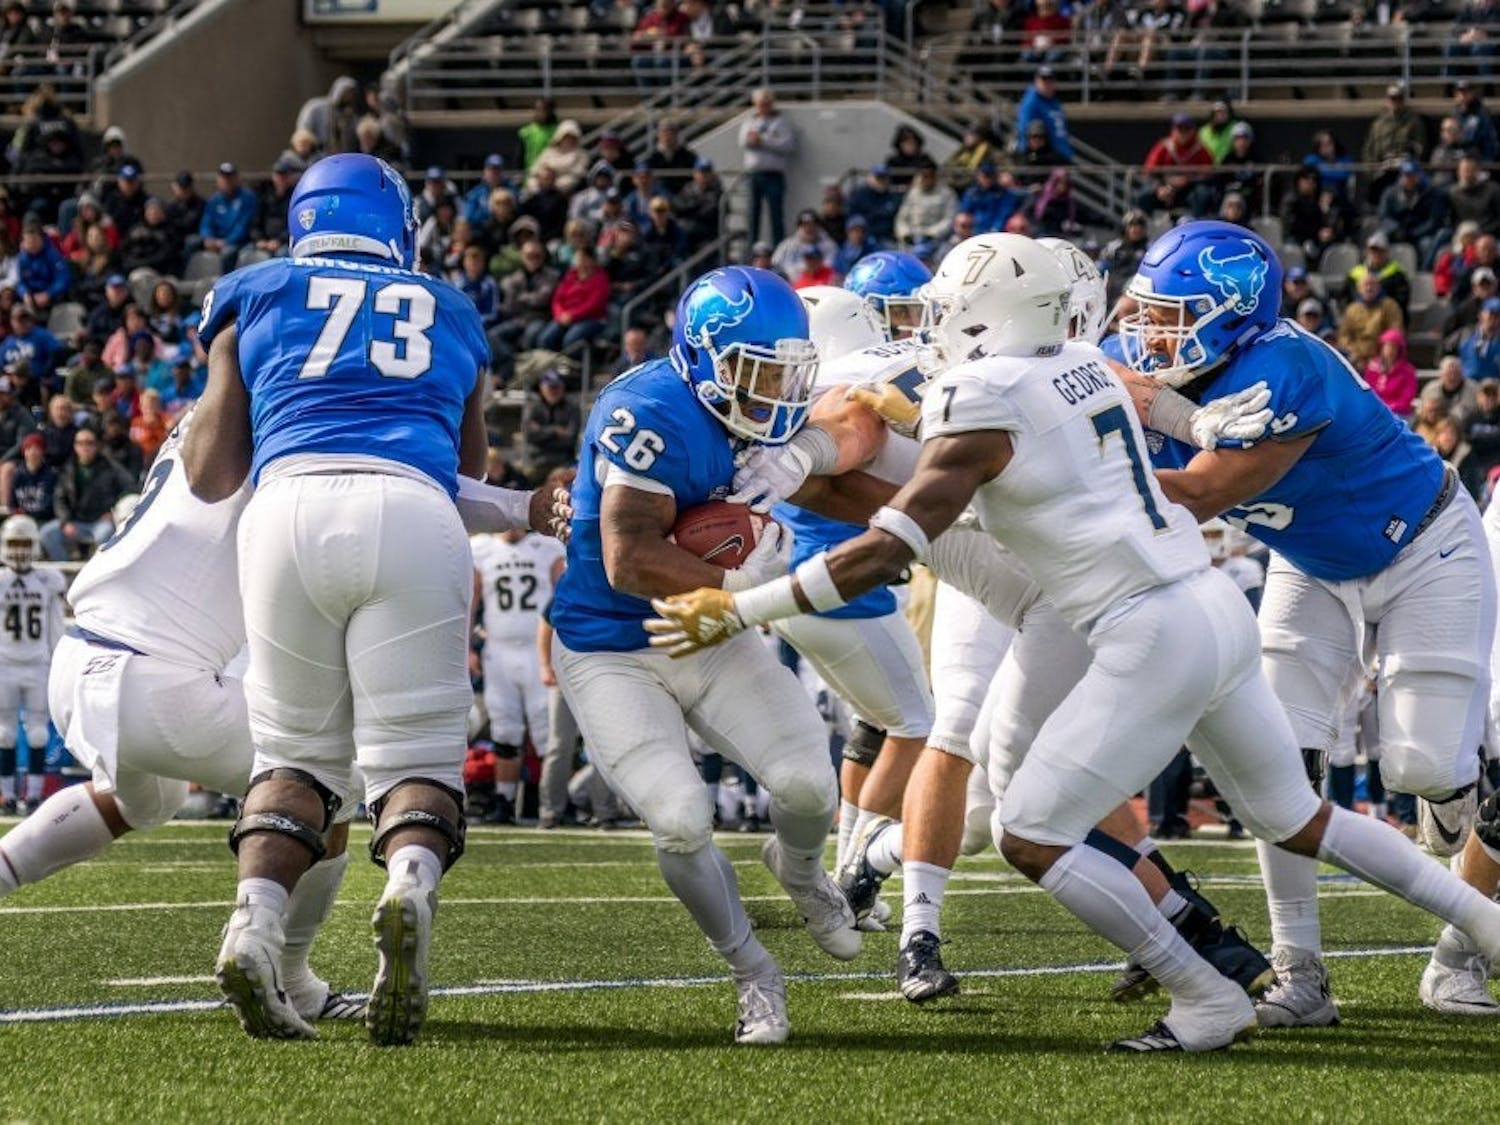 Jaret Paterson of UB Football in action during a game last fall.